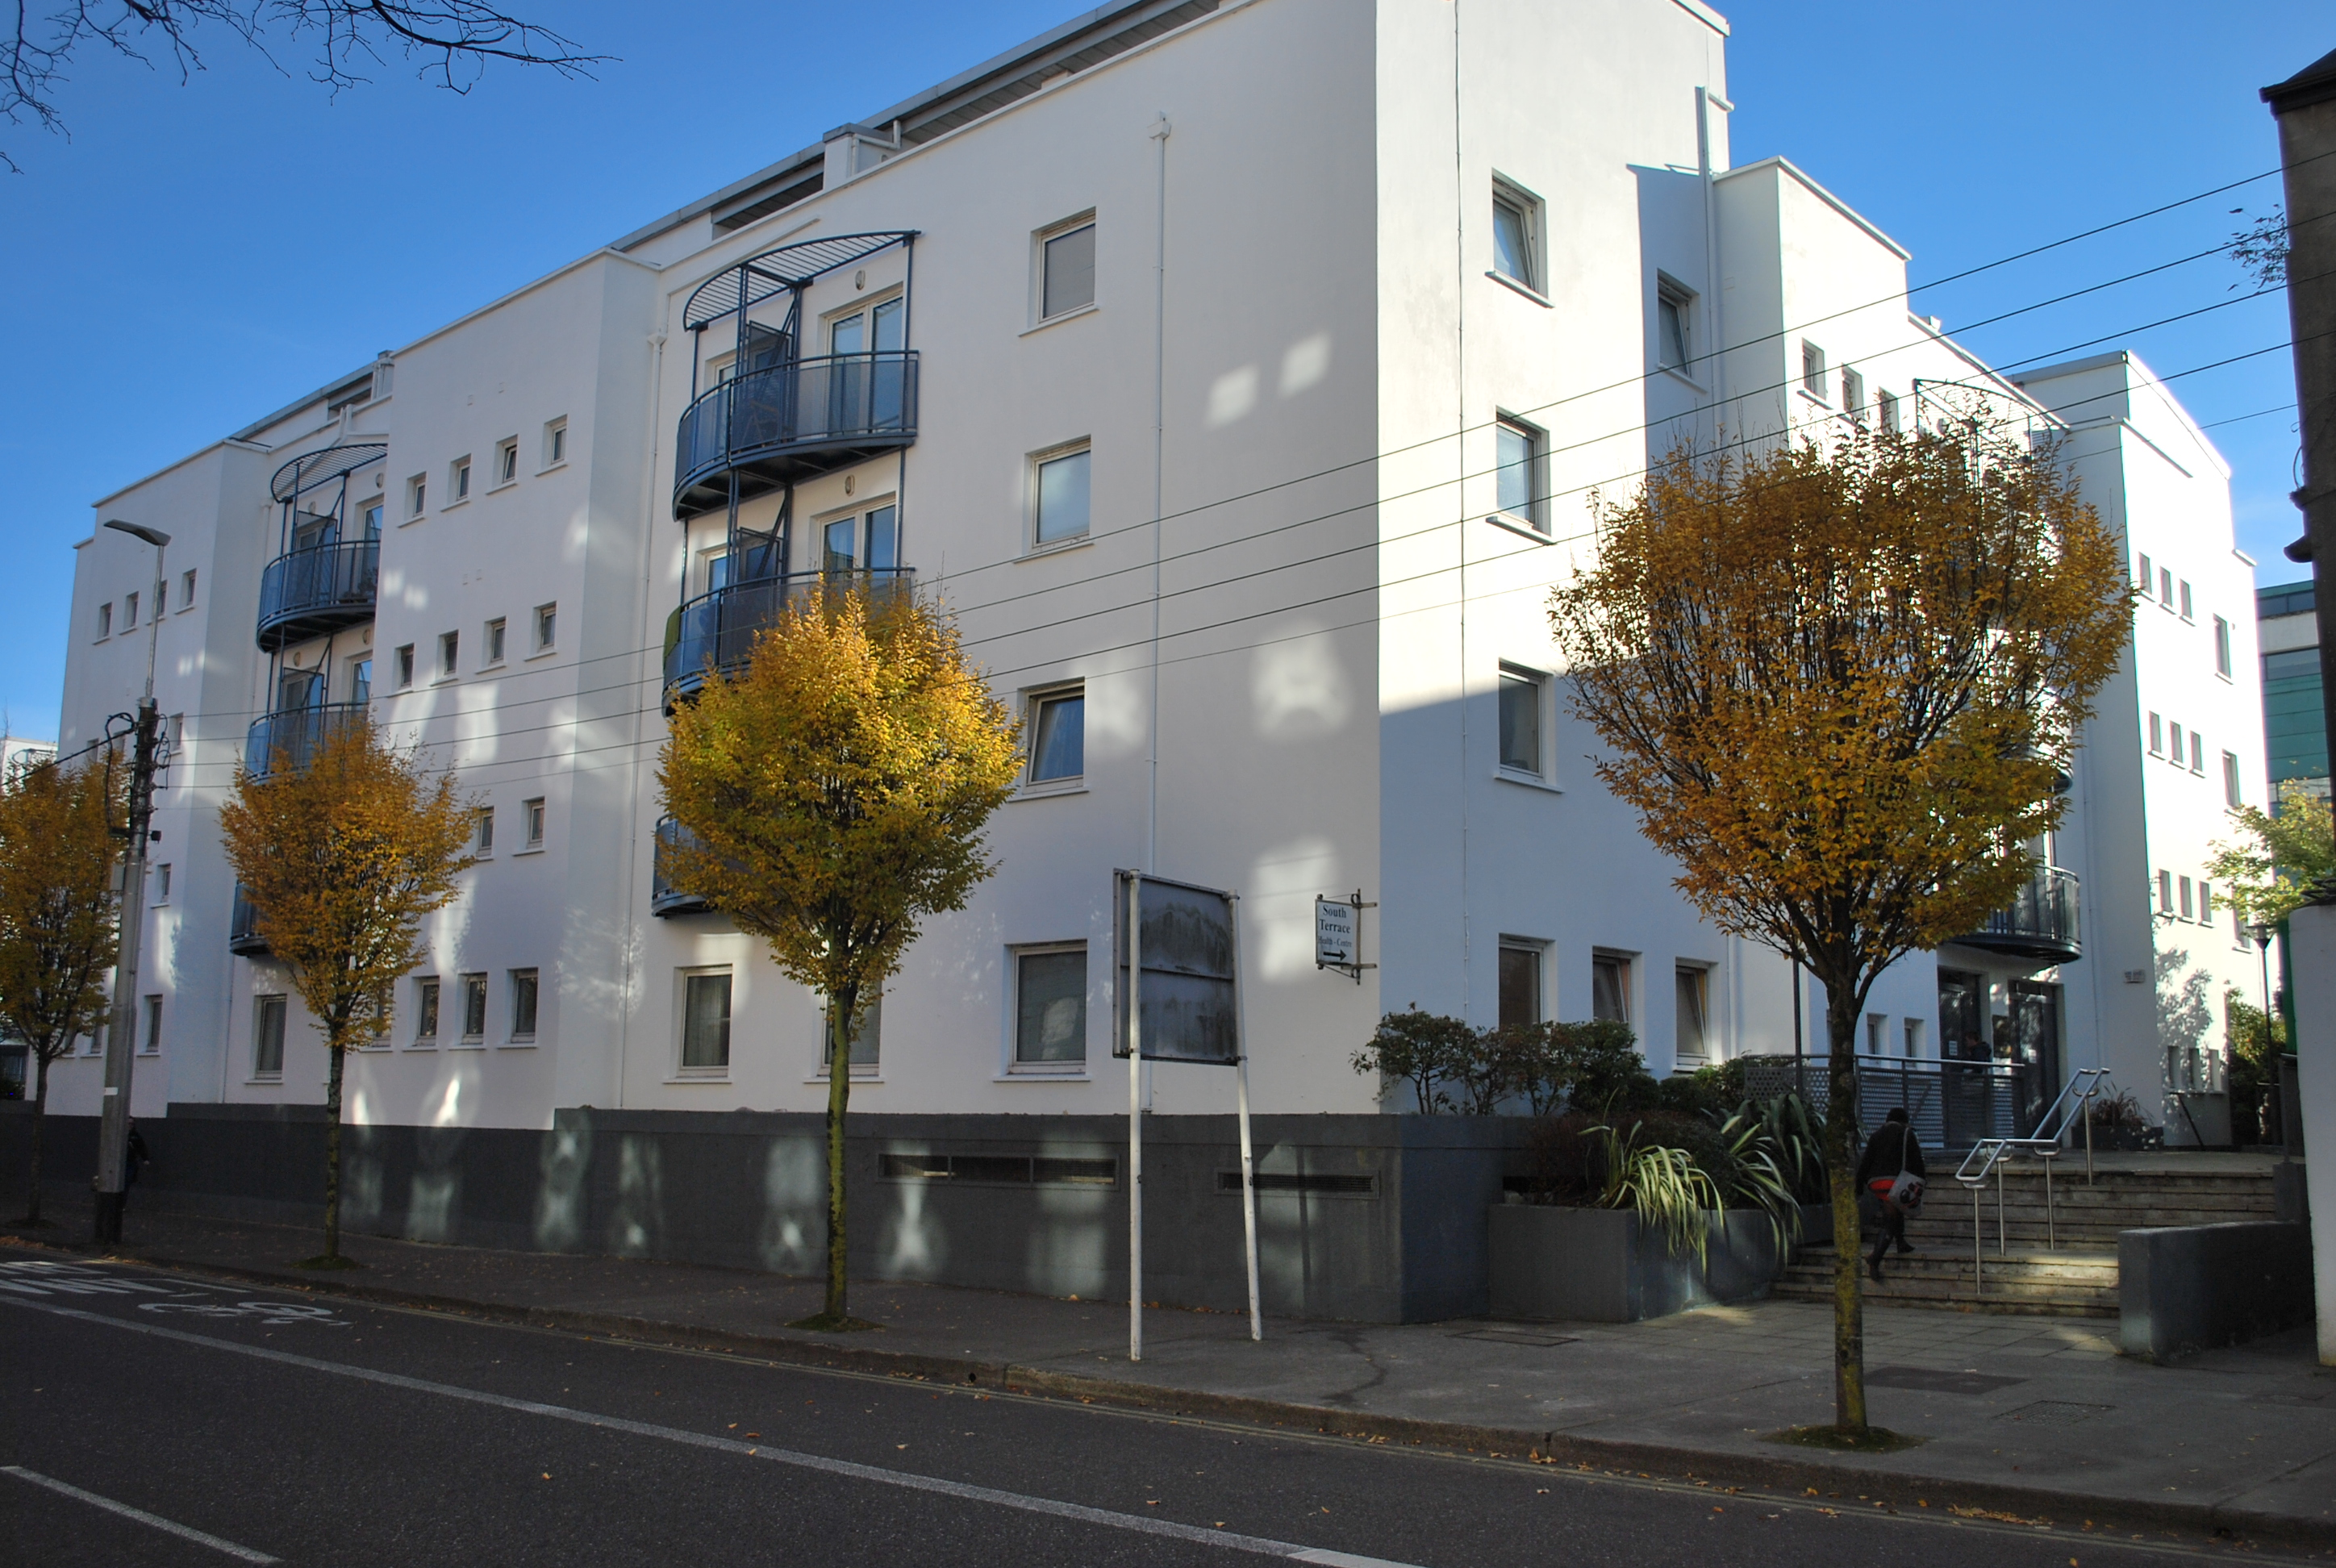 SALE AGREED 25B South Terrace, Cork